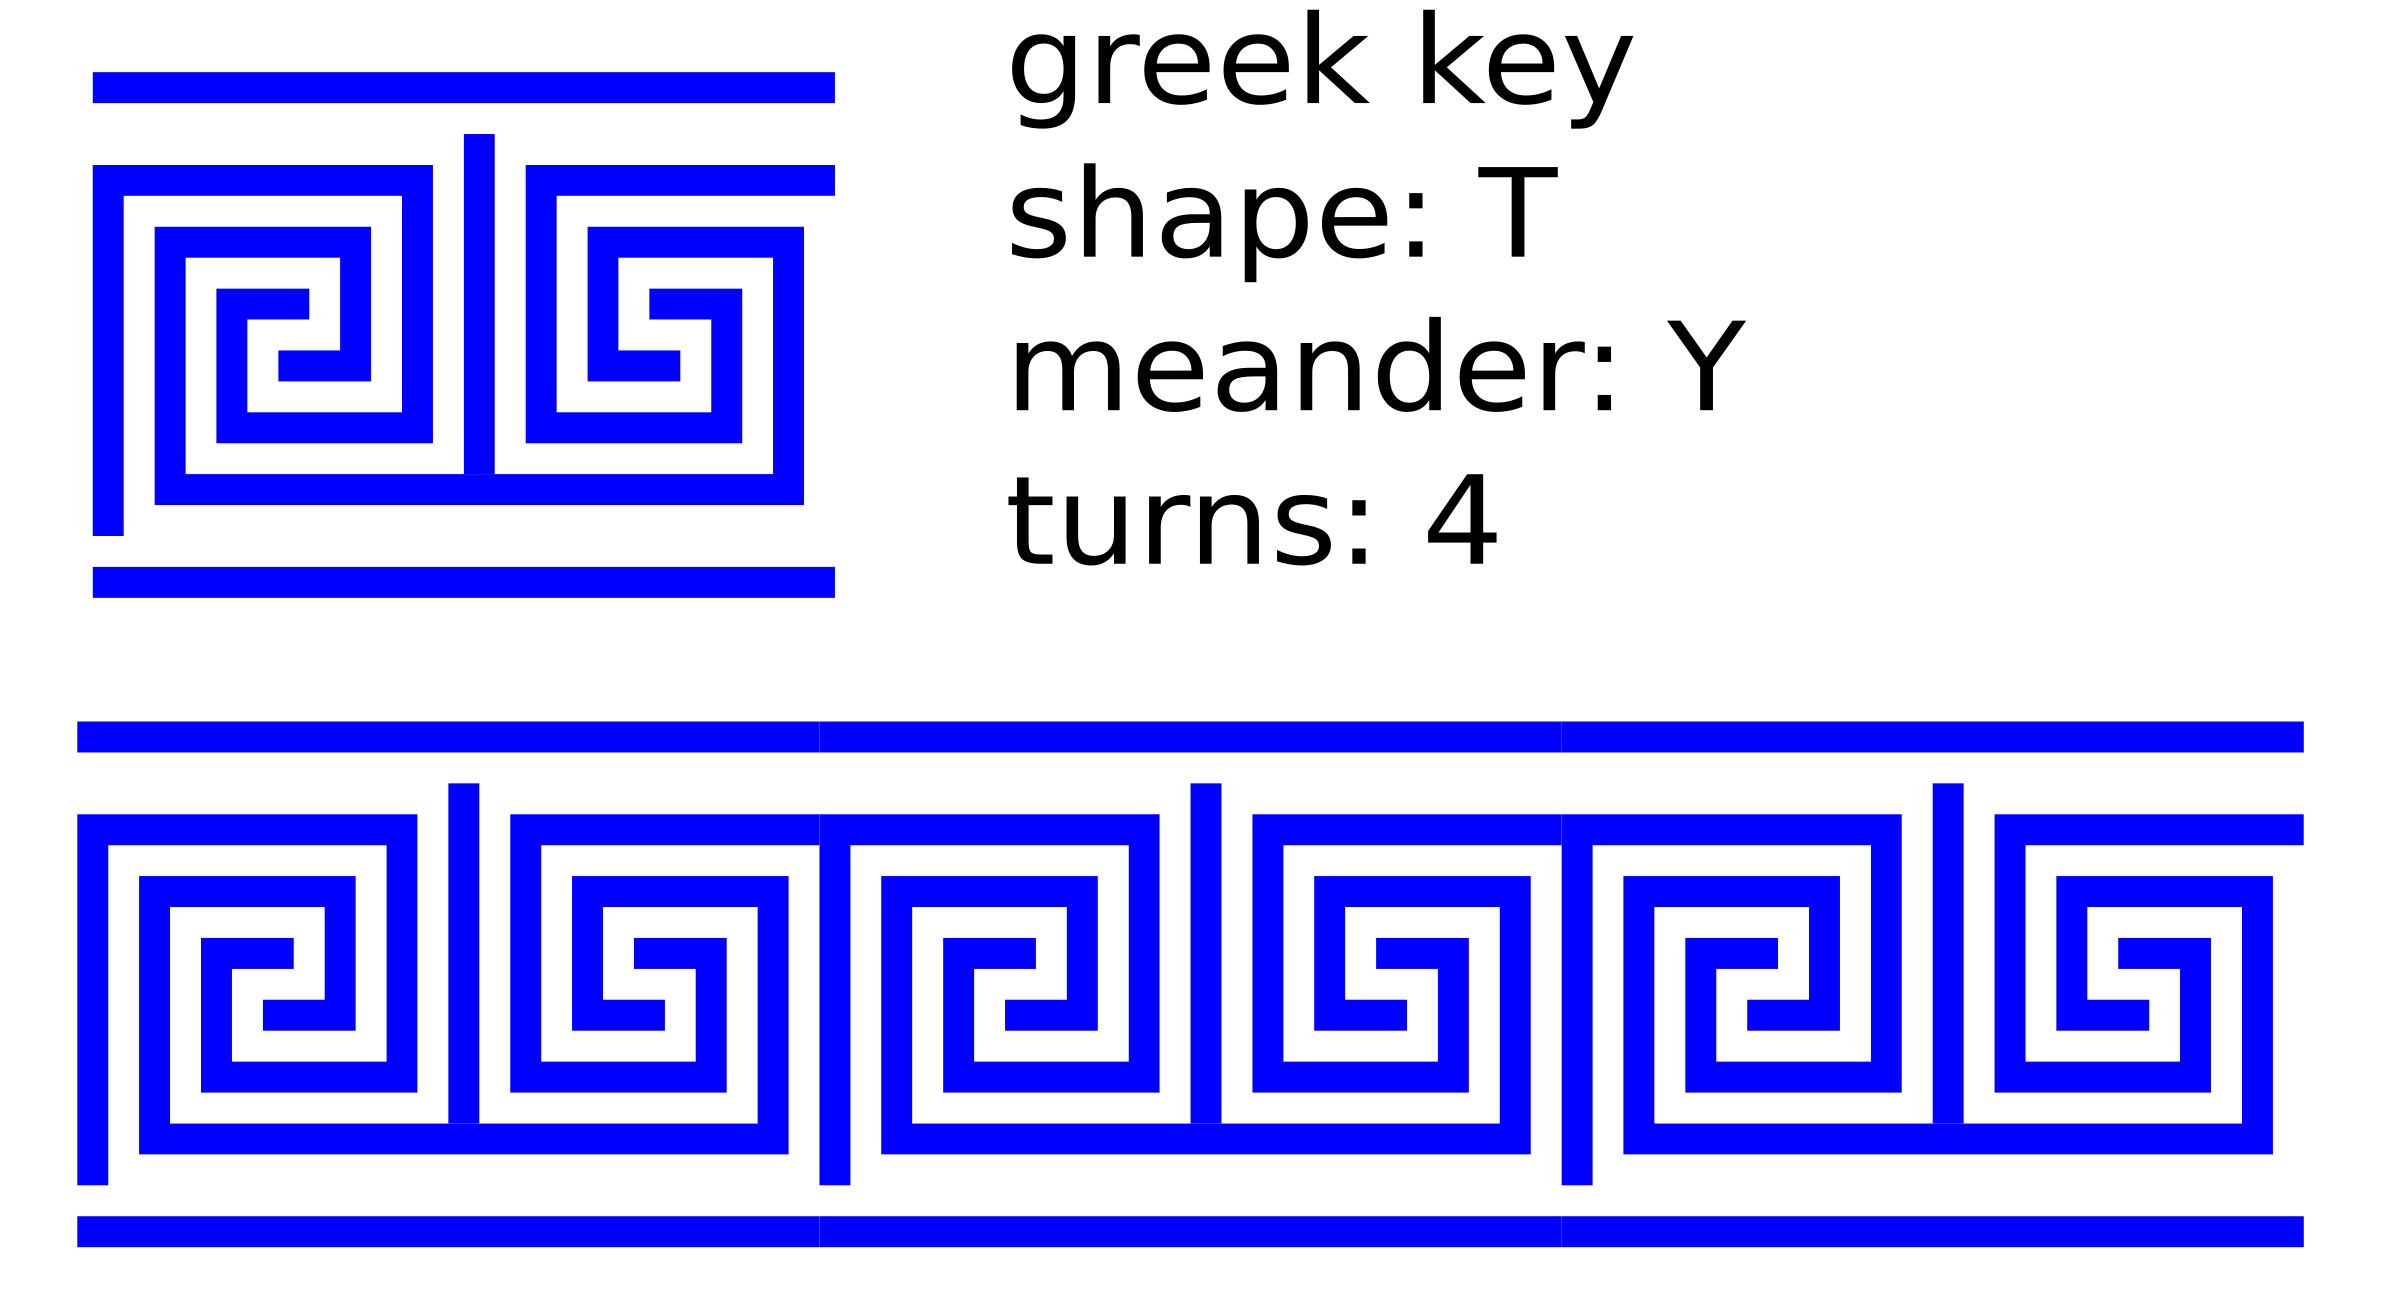 Greek key t shape. Lines clipart blue